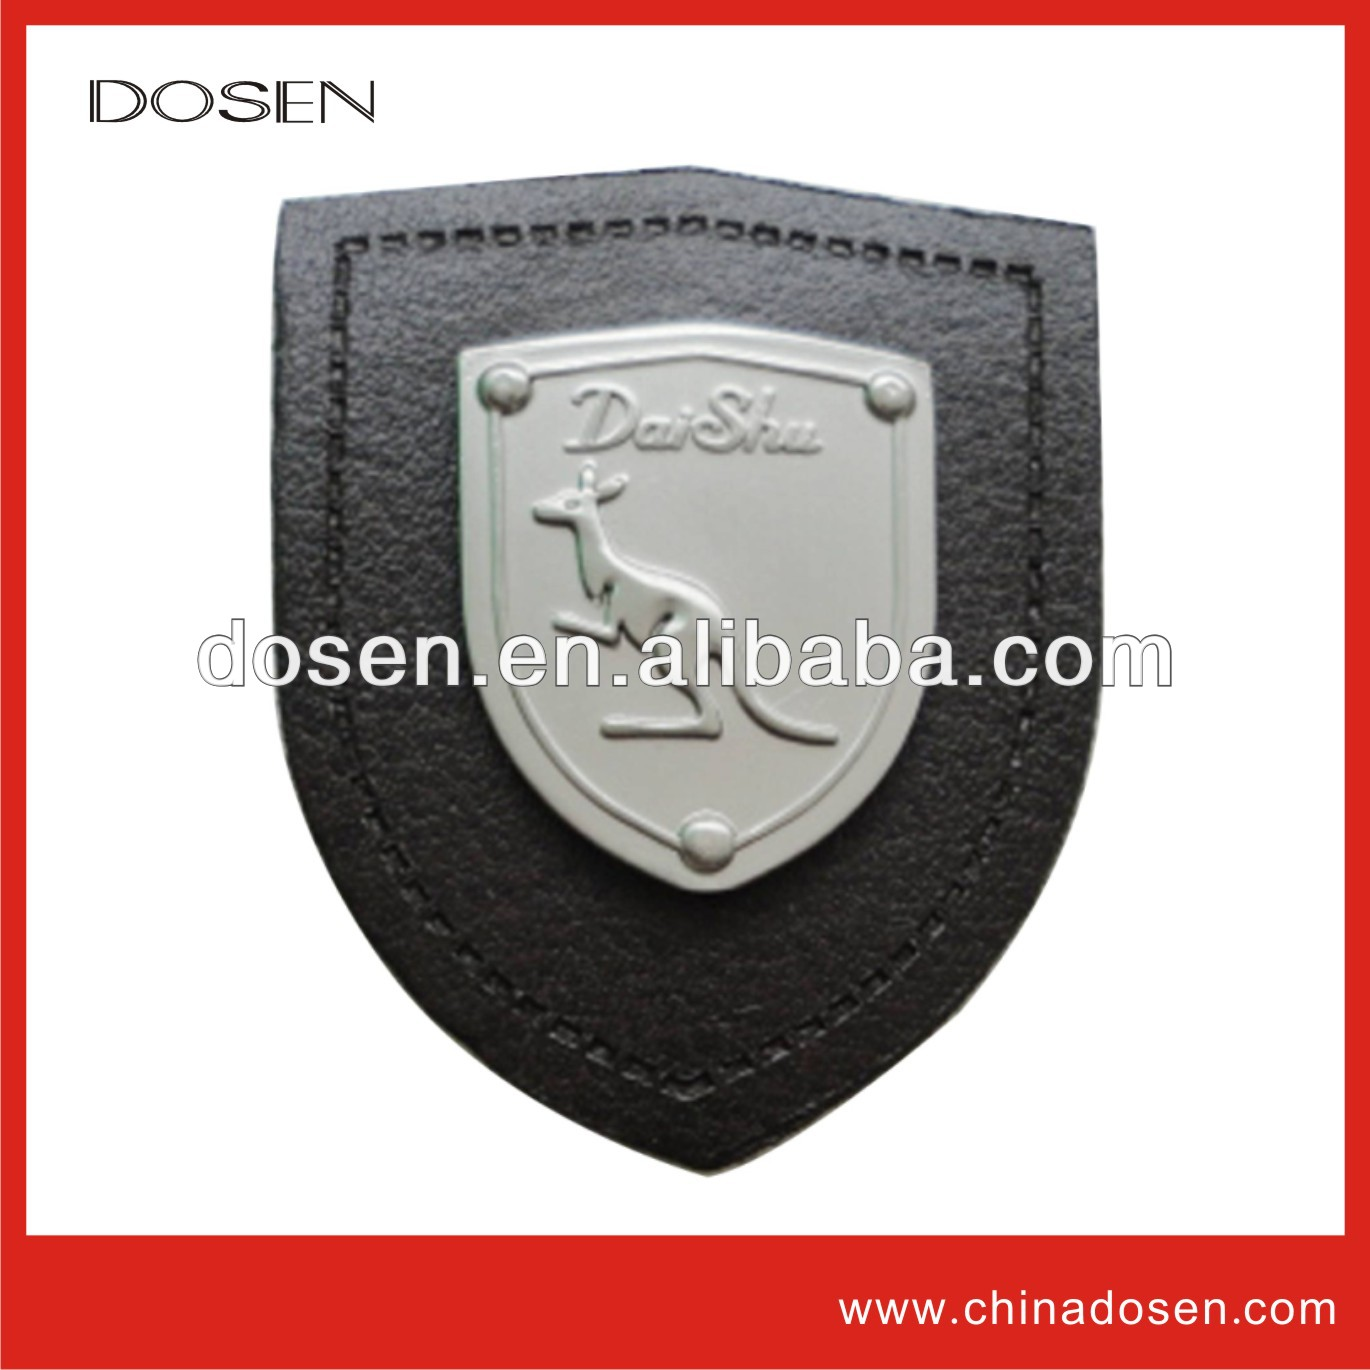 apparel rubber patch,eco leather definition,label maker